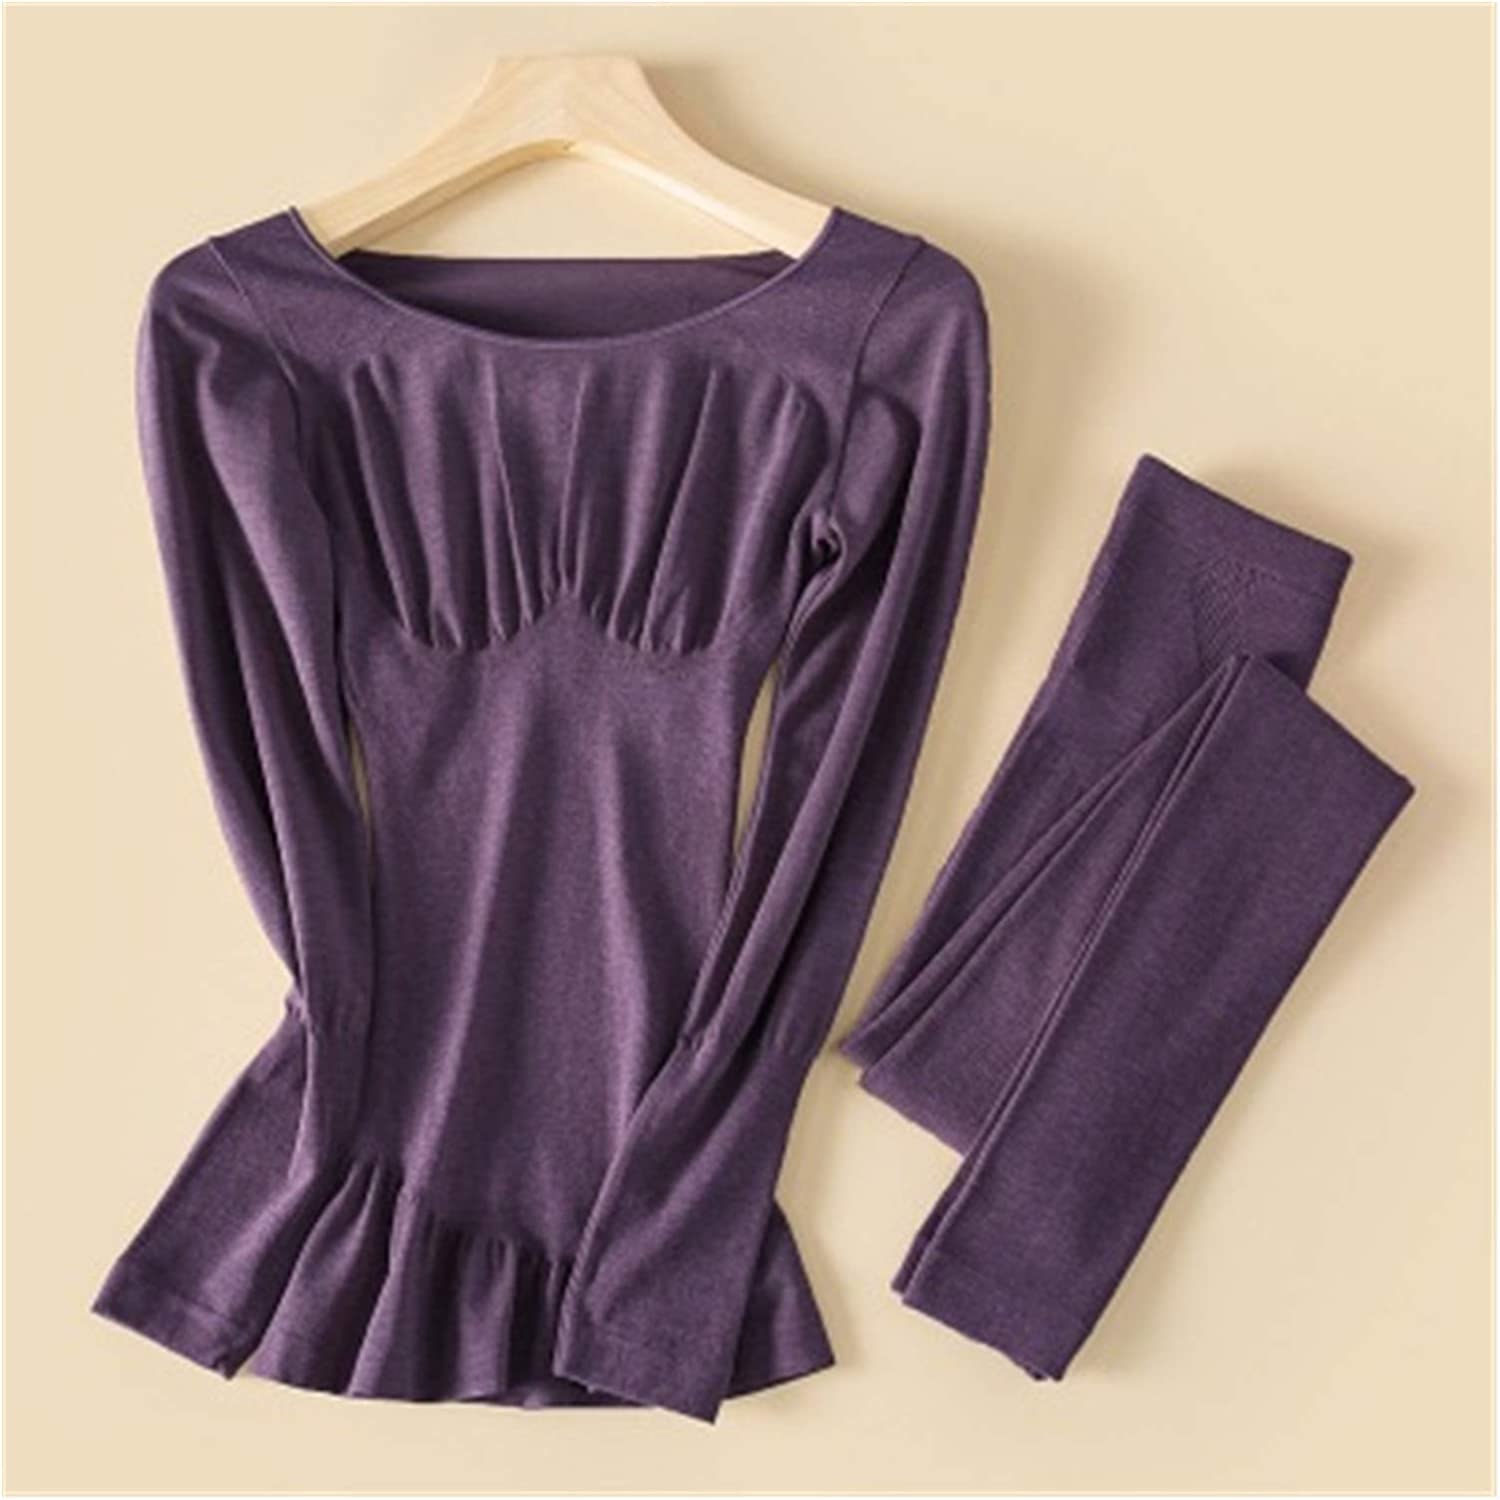 Glqwe Woman Thermo Underwear Autumn Winter Acrylic Fever Yarn Thermal Underwear Seamless Long Johns Elastic Women Body Shaper (Color : Purple, Size : One Size)